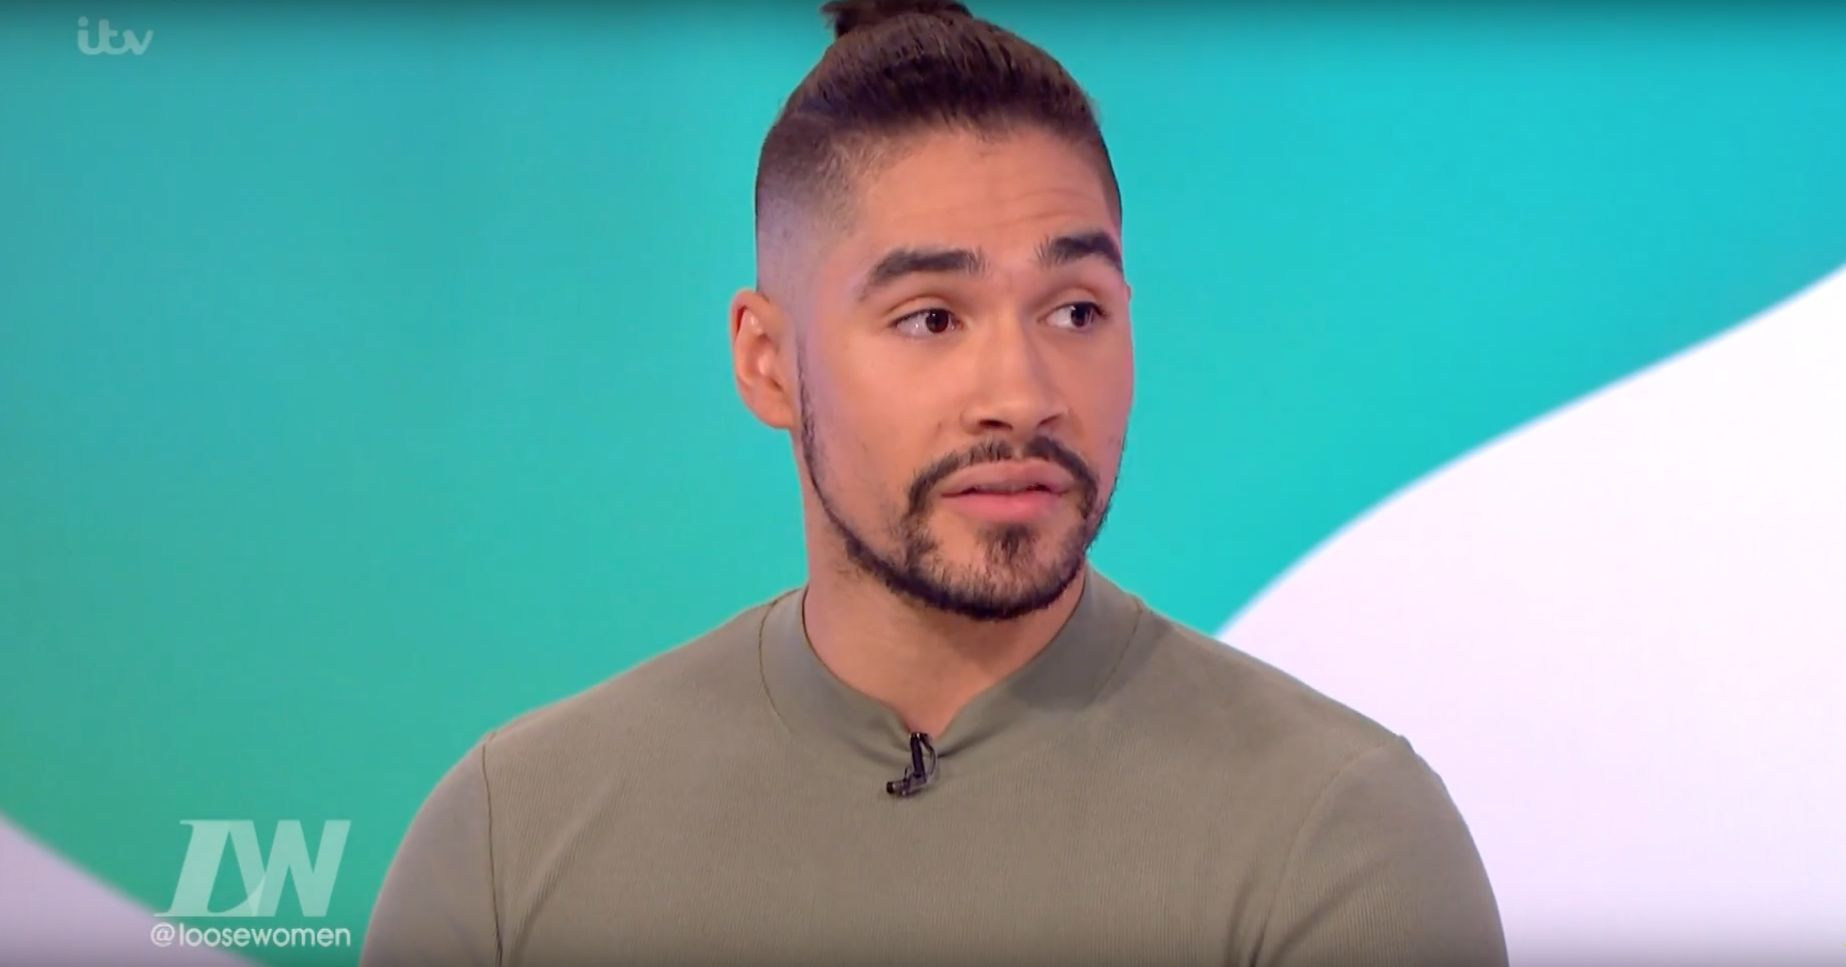 Louis Smith Says He's 'Ashamed' Of His Behaviour In Video Mocking